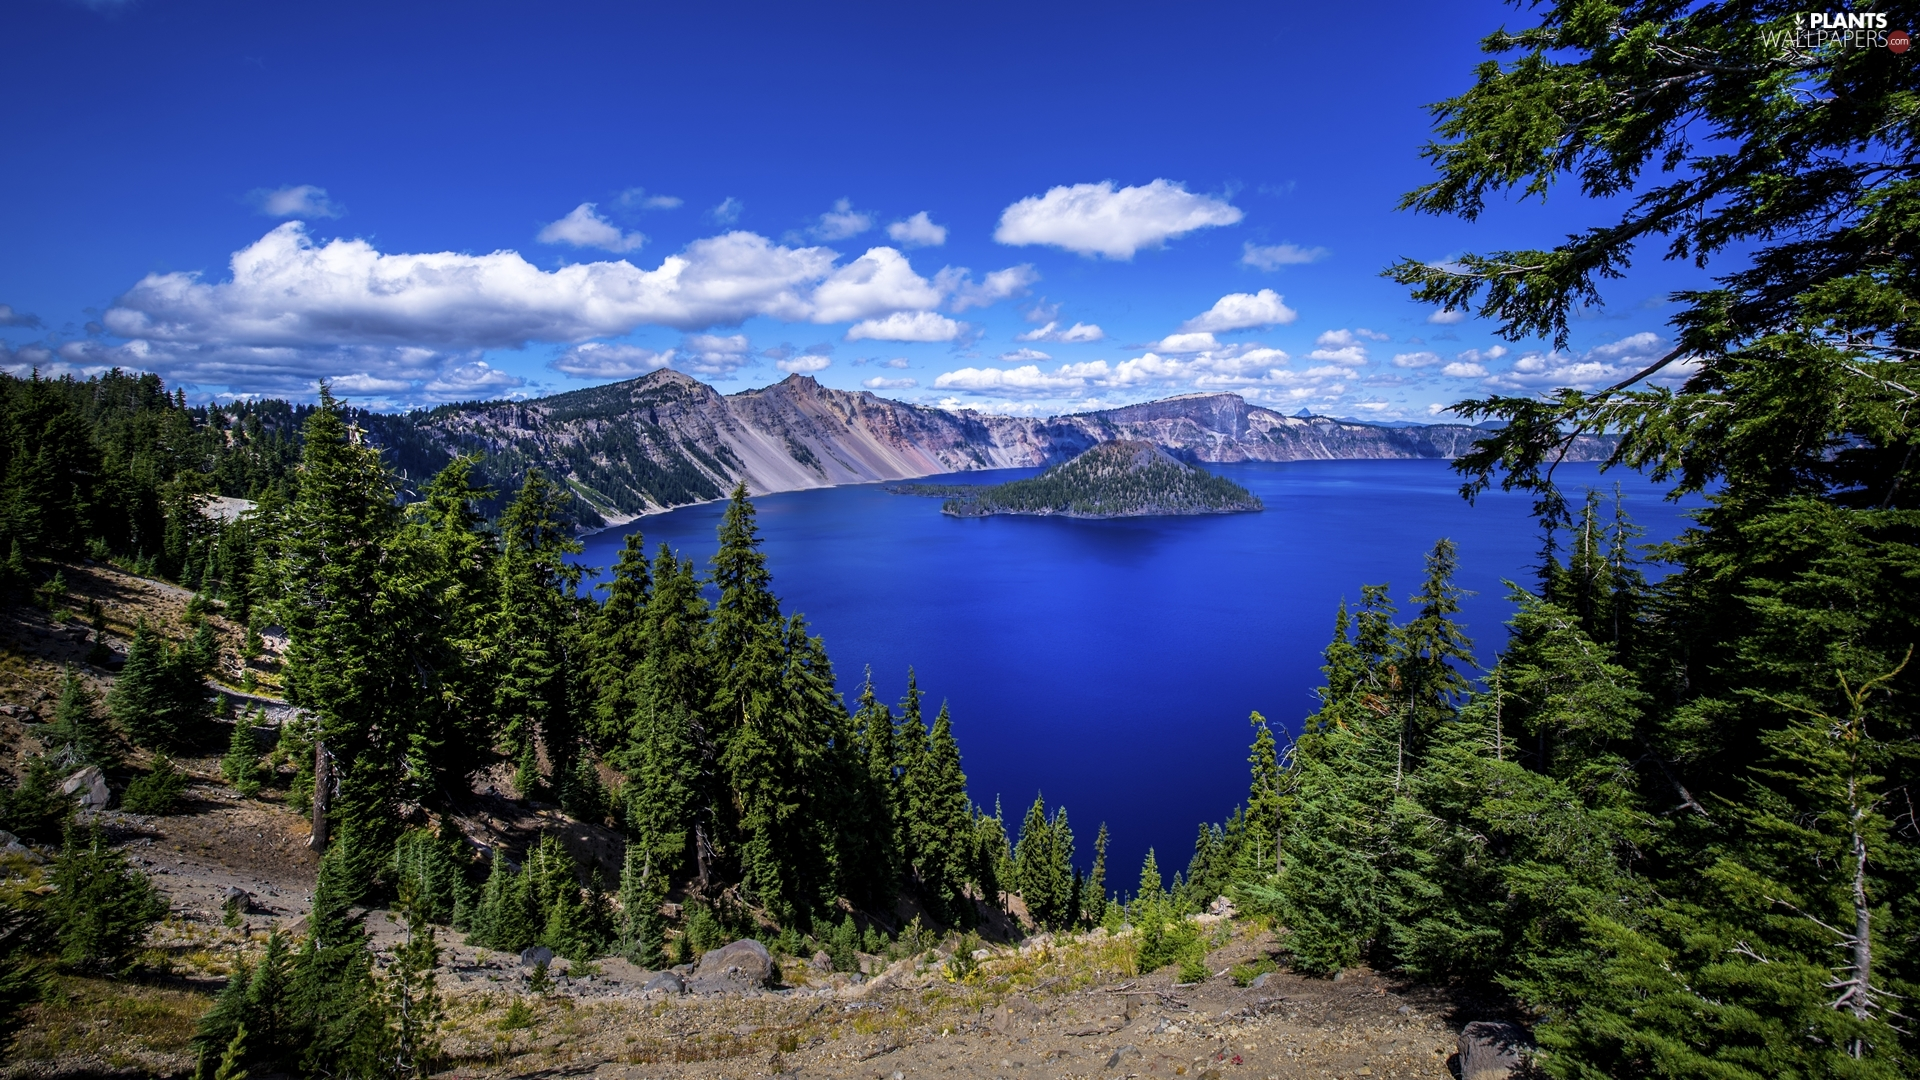 Crater Lake National Park, Crater Lake, viewes, Island of Wizard, trees, Oregon, The United States, Mountains